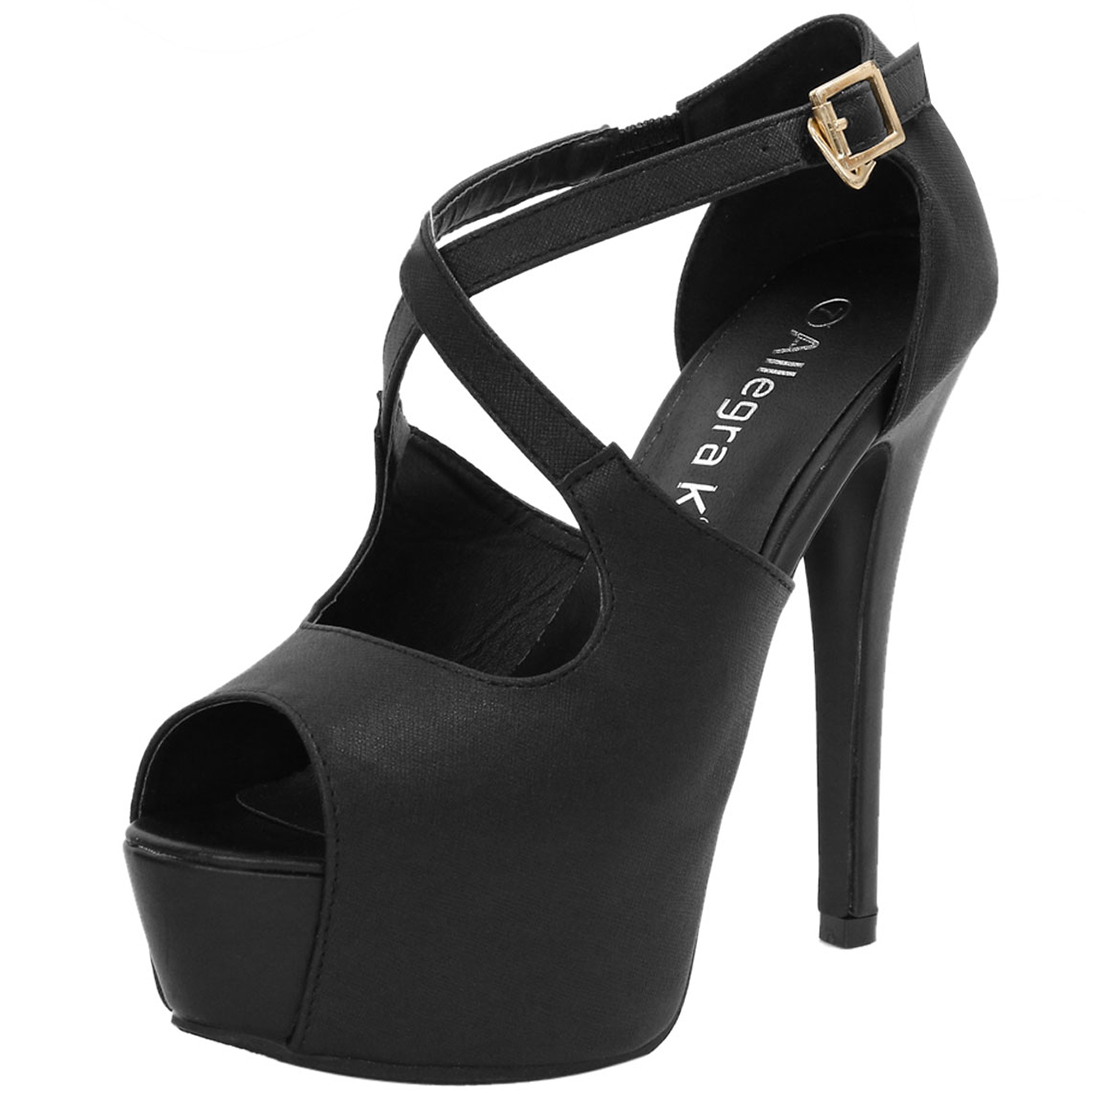 Woman Peep Toe High Heel Crisscross Straps Platform Sandals Black US 9